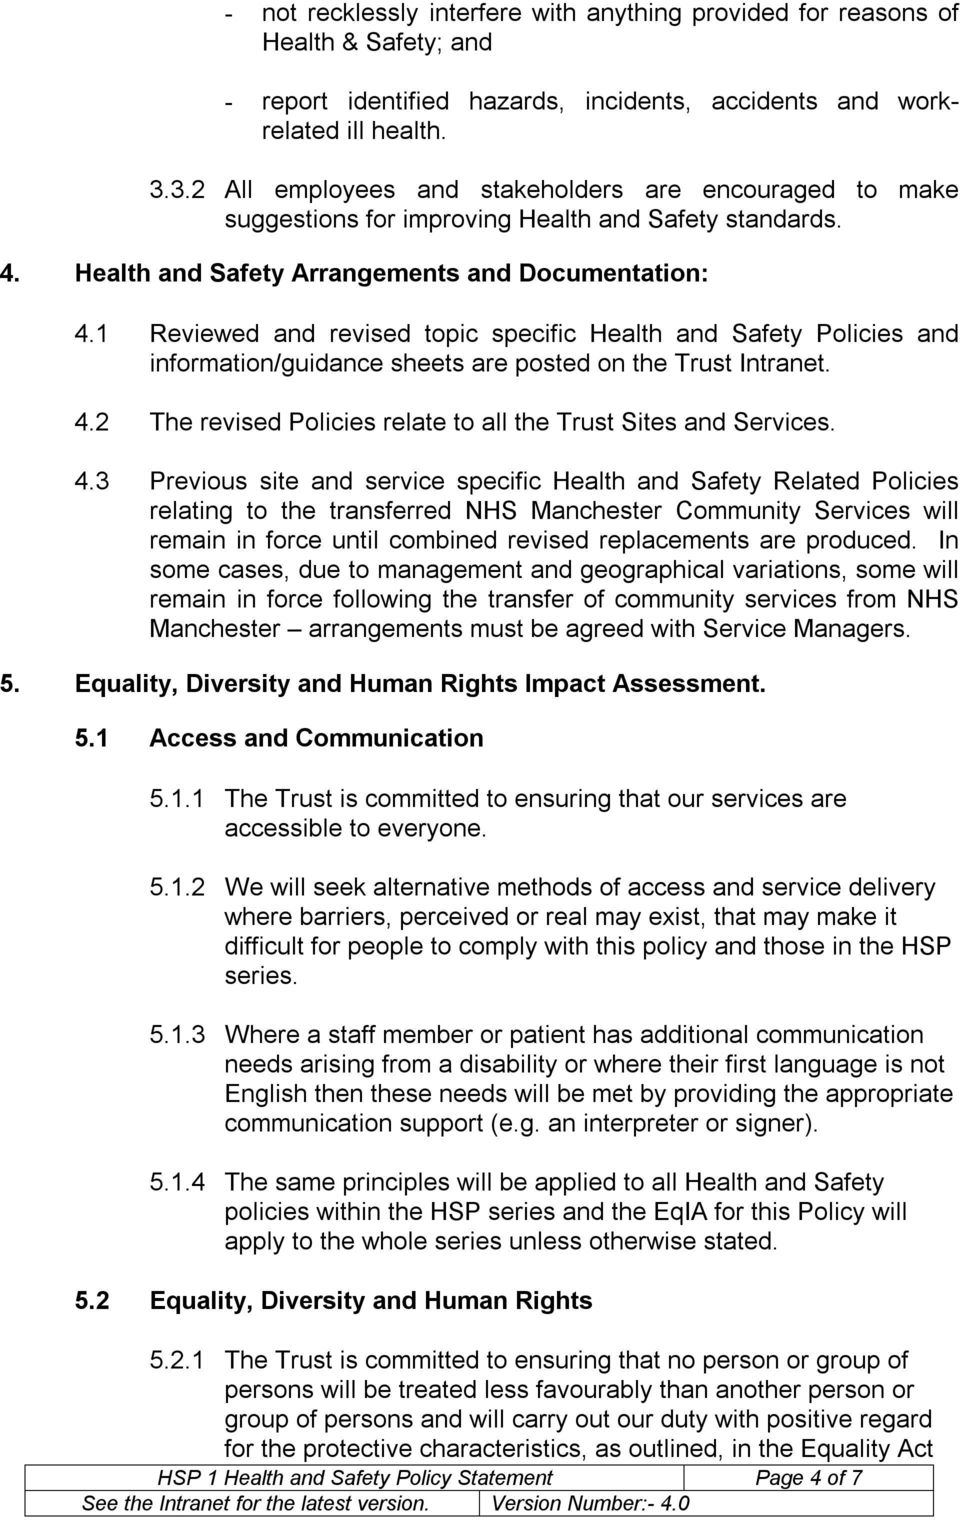 1 Reviewed and revised topic specific Health and Safety Policies and information/guidance sheets are posted on the Trust Intranet. 4.2 The revised Policies relate to all the Trust Sites and Services.